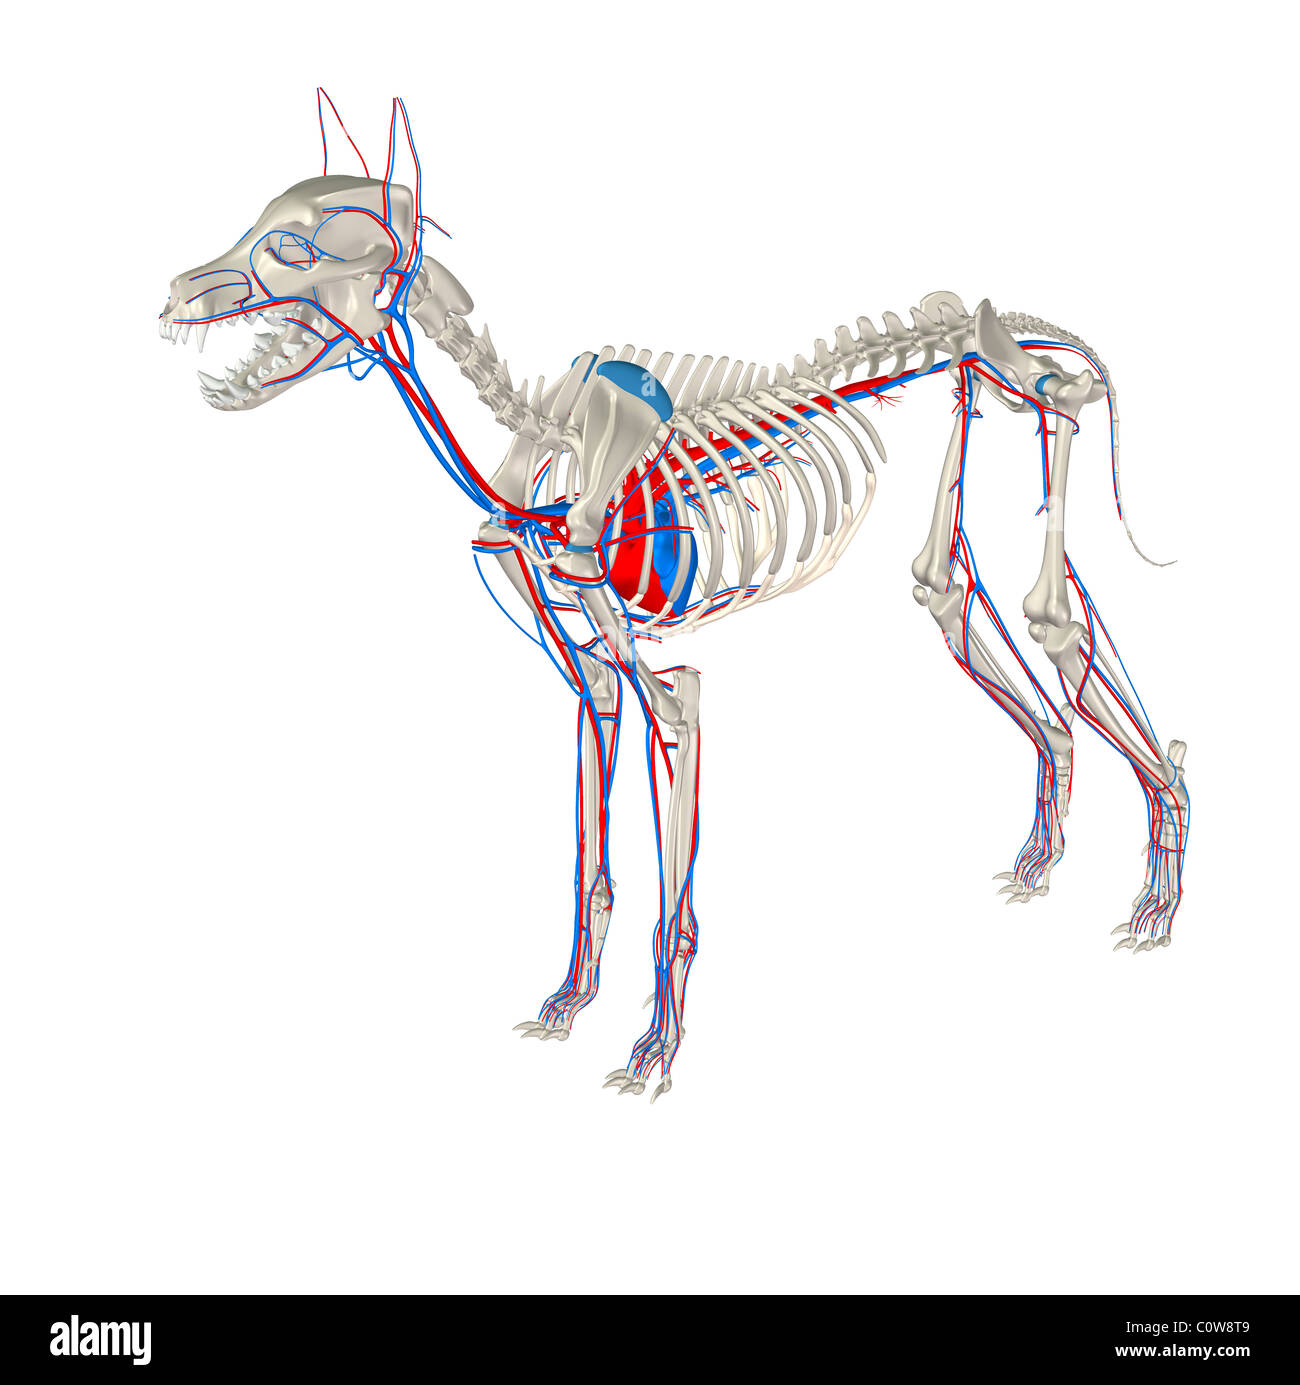 Anatomy Dog Cut Out Stock Images & Pictures - Alamy